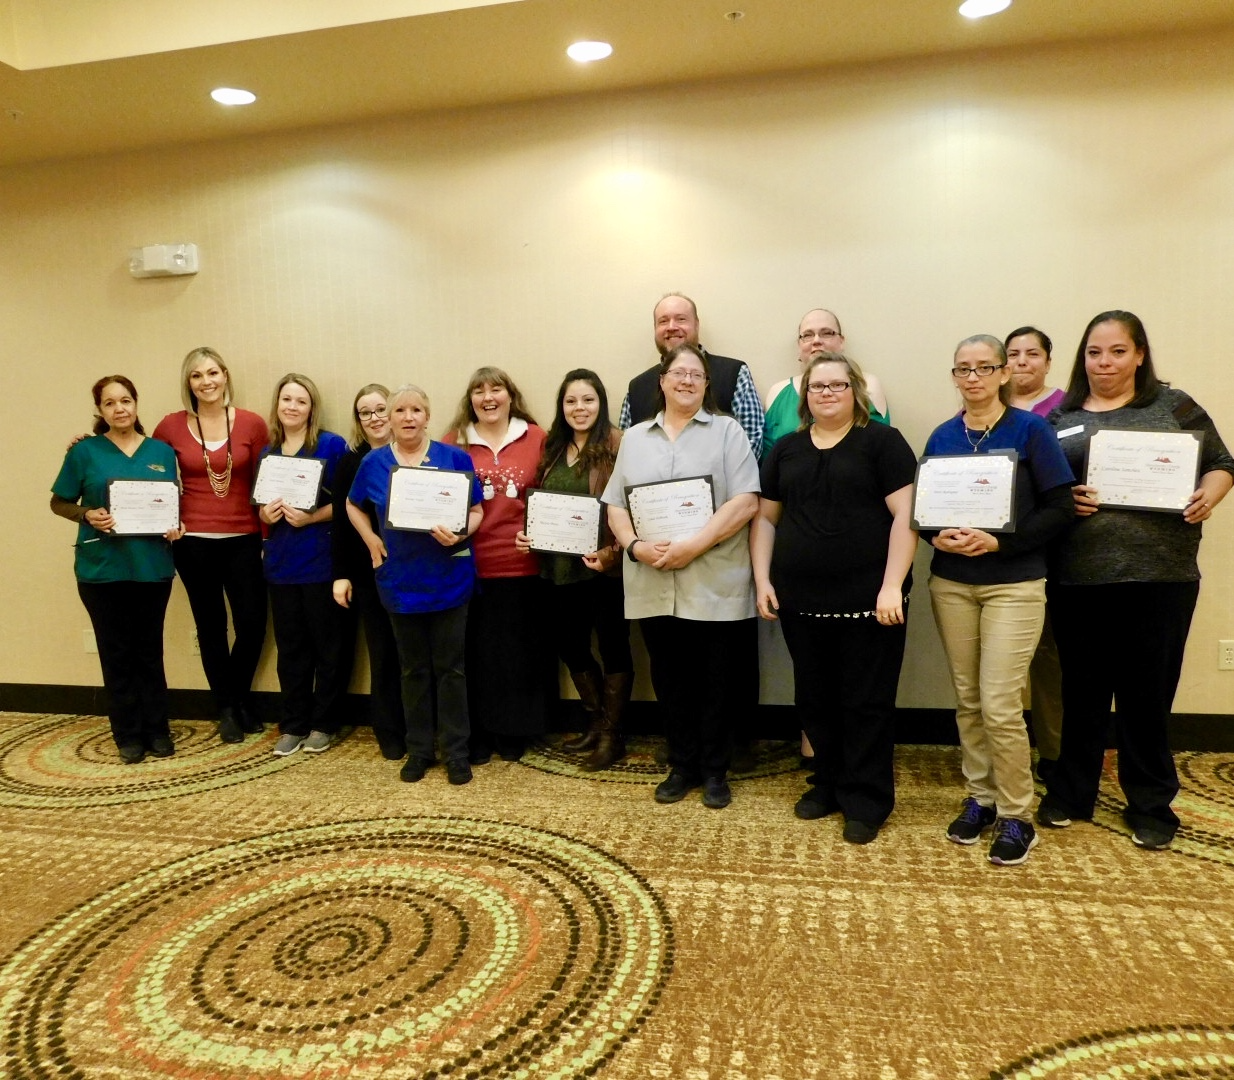 Sweetwater County Travel and Tourism Presents Summer and Fall Quarters 2017 R.E.A.C.H. Award Winners